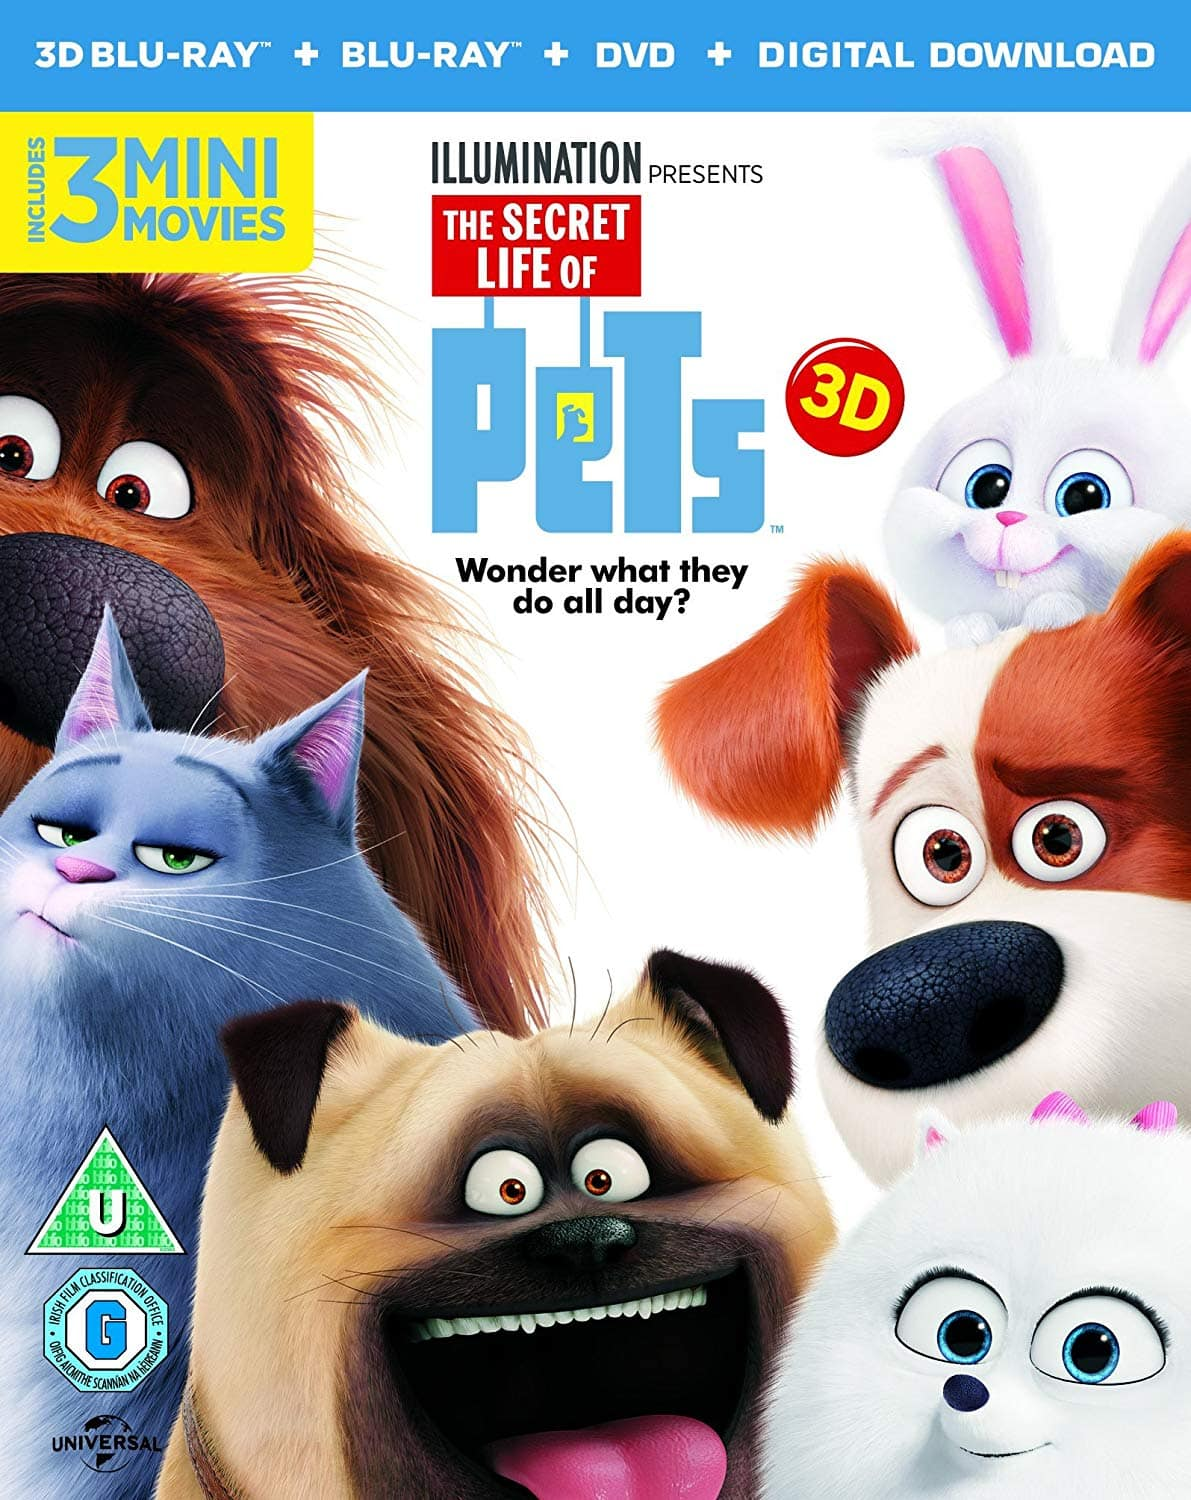 3D Movies: The Secret Life Of Pets (Region Free Blu-ray 3D + Blu-ray) $10.66 Shipped & More @ Amazon UK